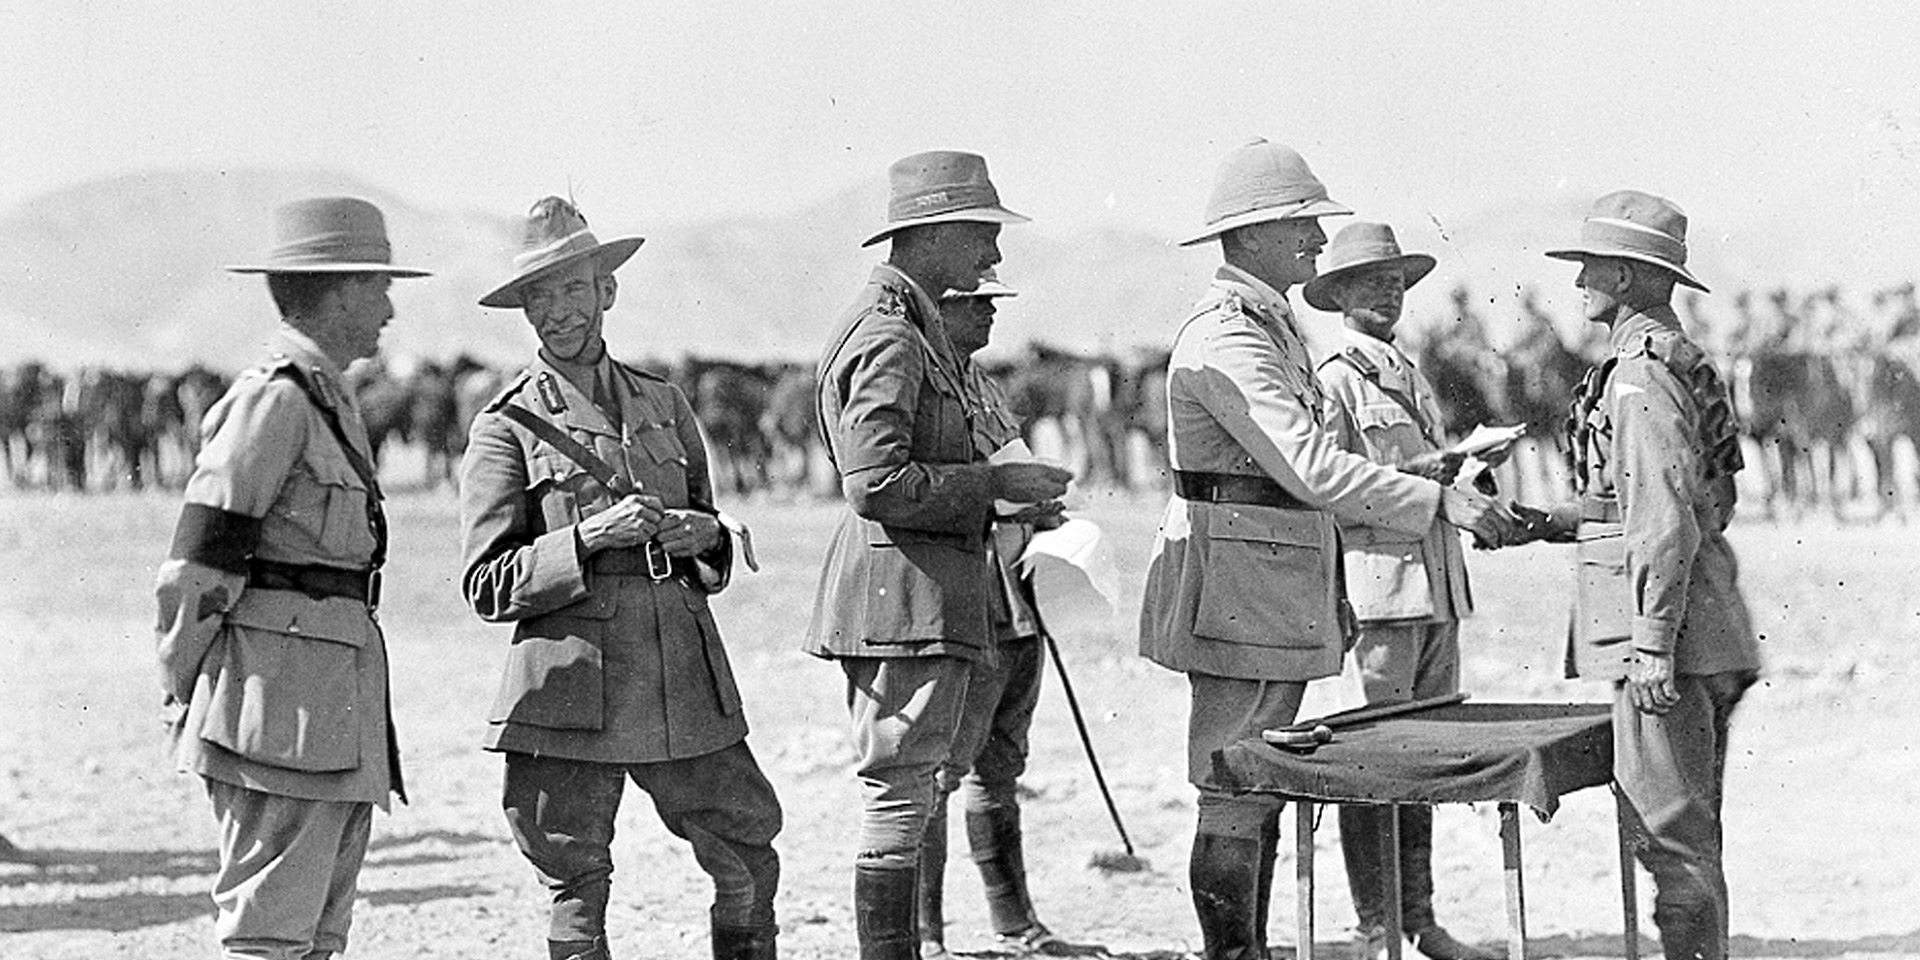 The presentation of medals to troops of ANZAC Mounted Division by General Sir Edmund Allenby, 1918